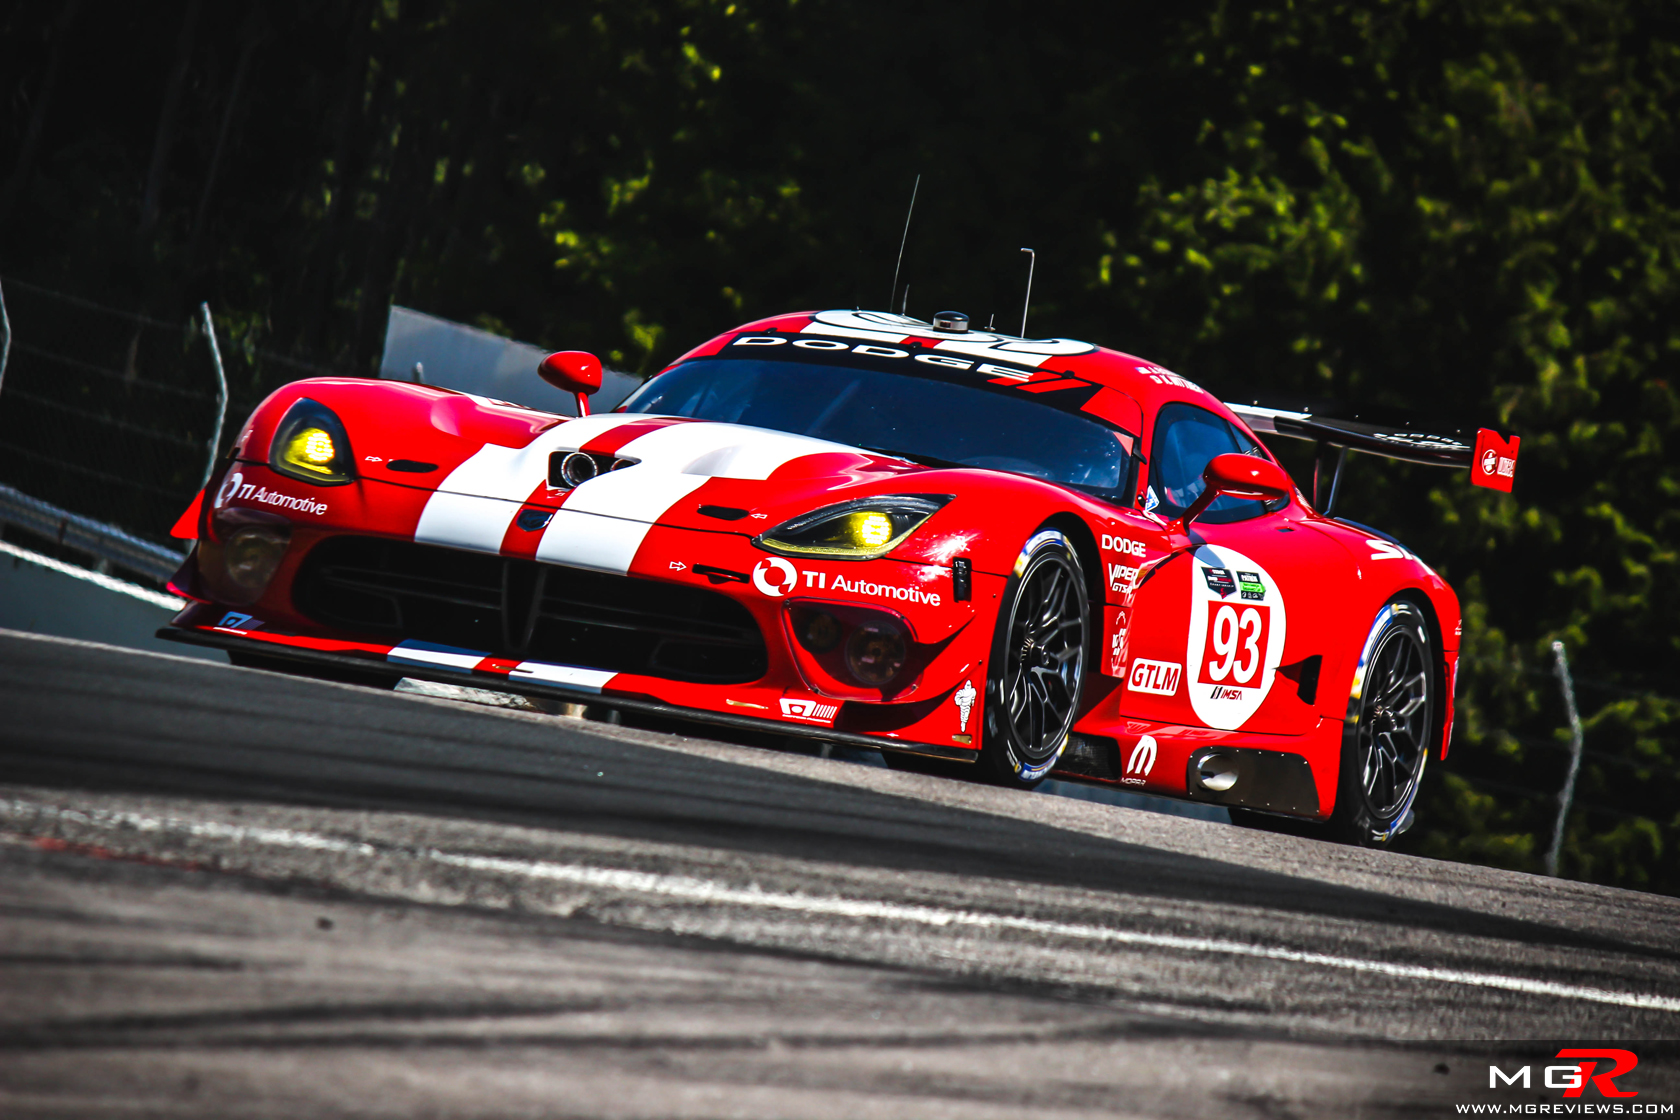 photos 2014 imsa tudor united sports car series part 1 \u2013 practice